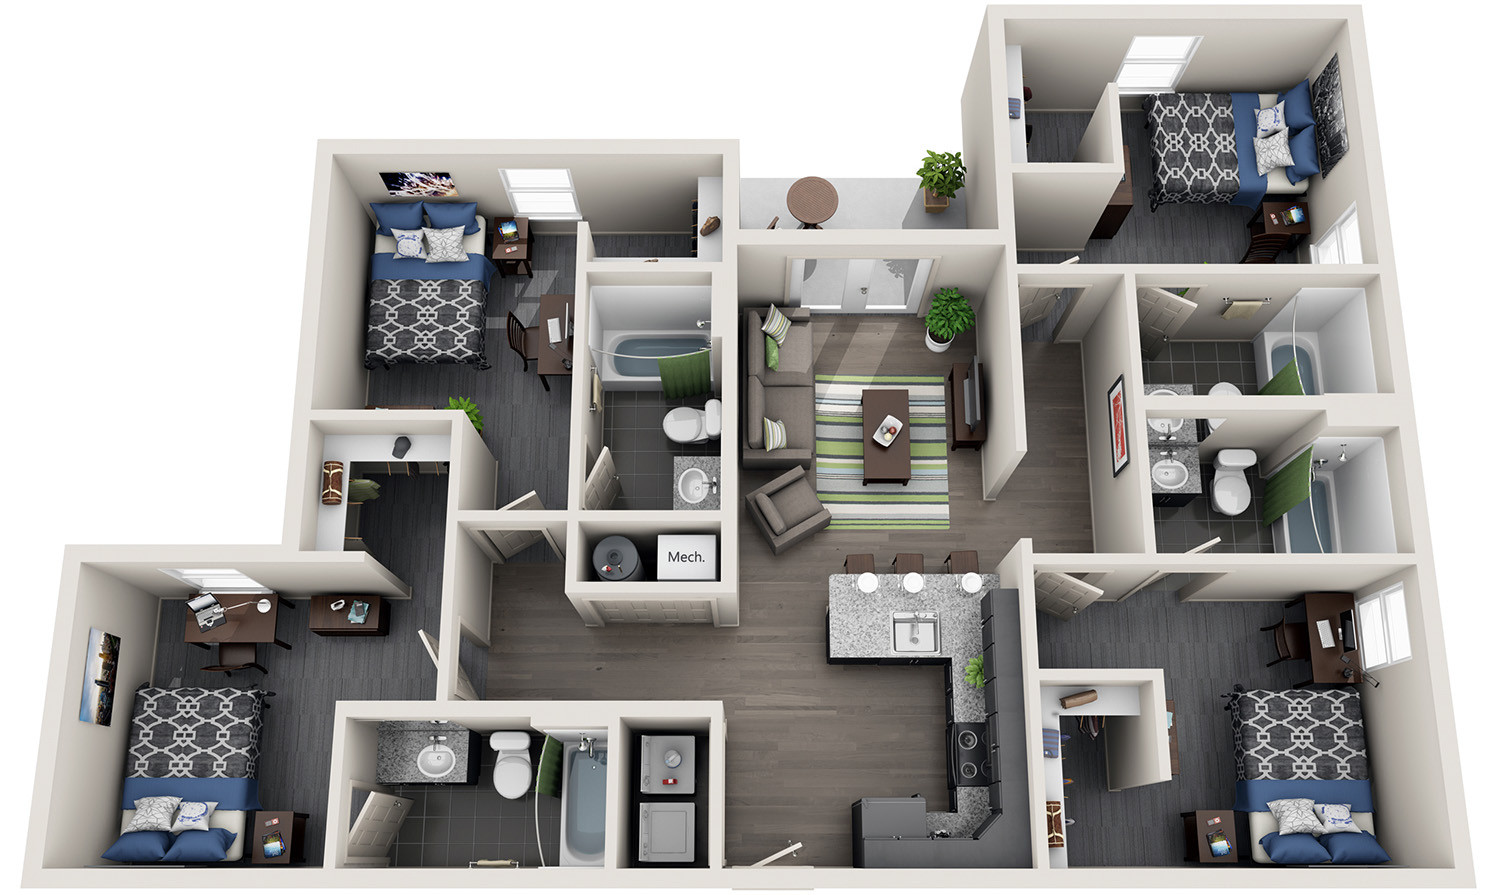 Best ideas about 4 Bedroom Apartments . Save or Pin 4 Bedroom Student Housing f Campus Apartment Now.